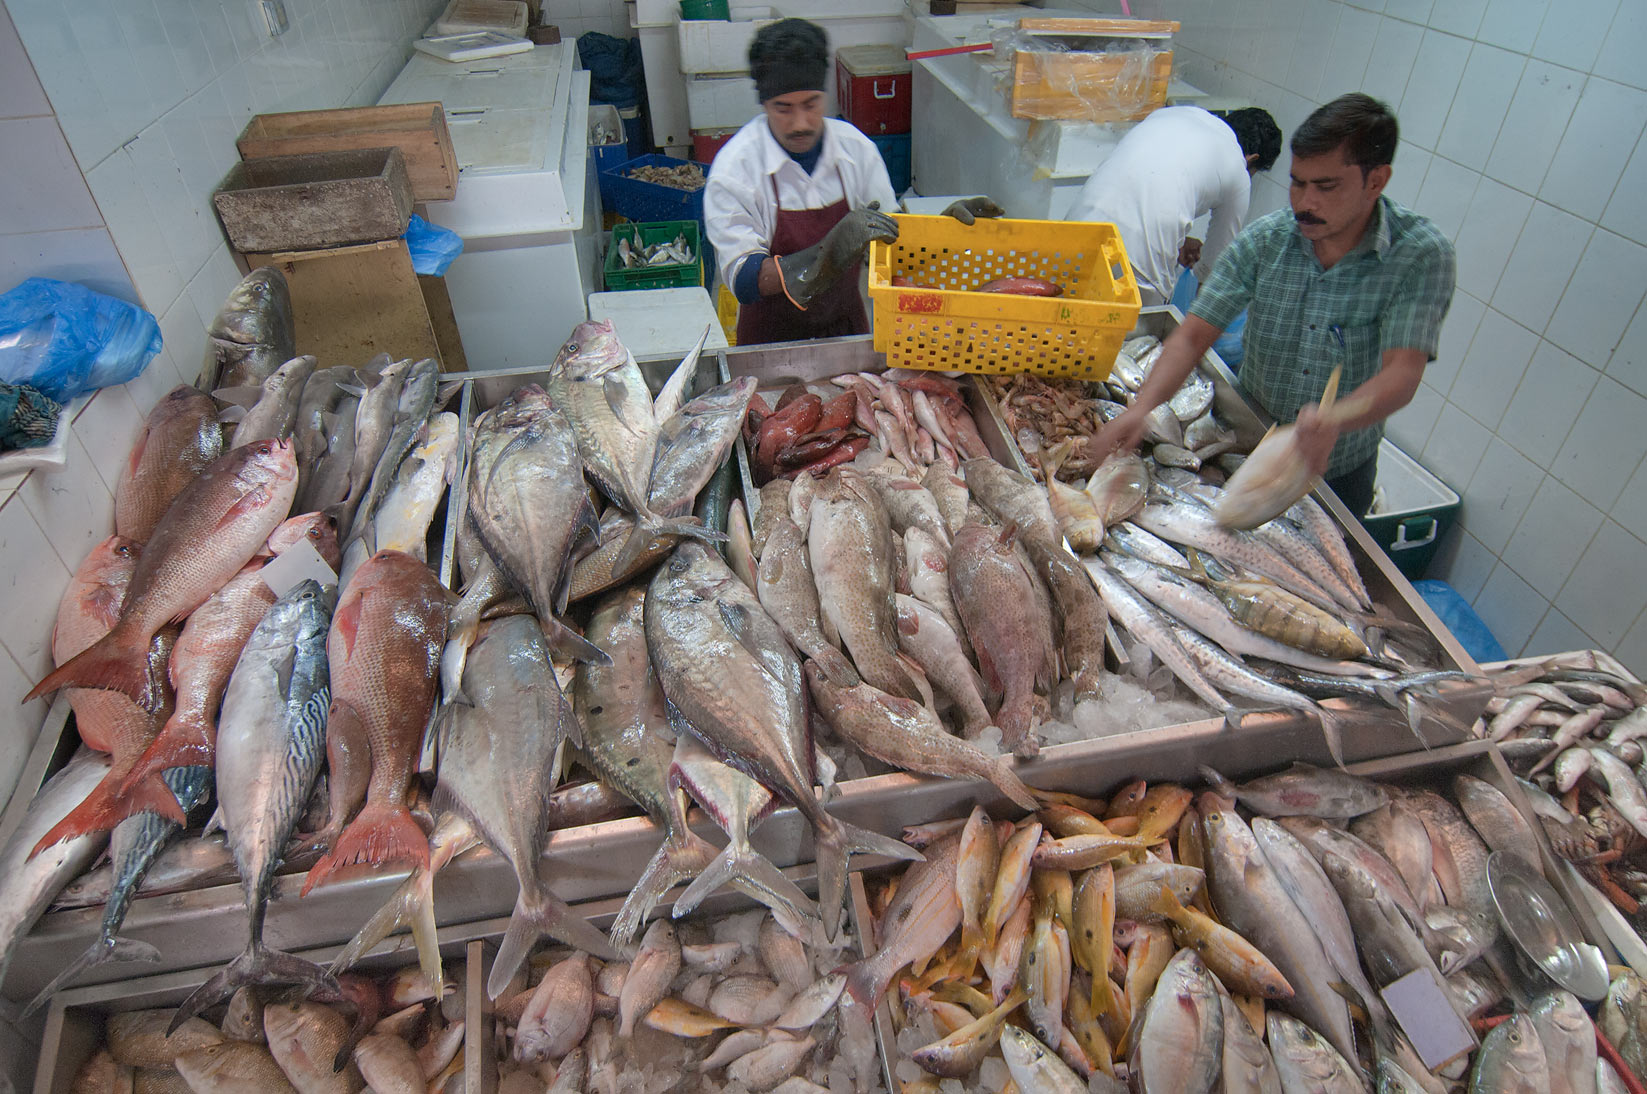 Fish stand in Fish Market, Wholesale Markets area. Doha, Qatar